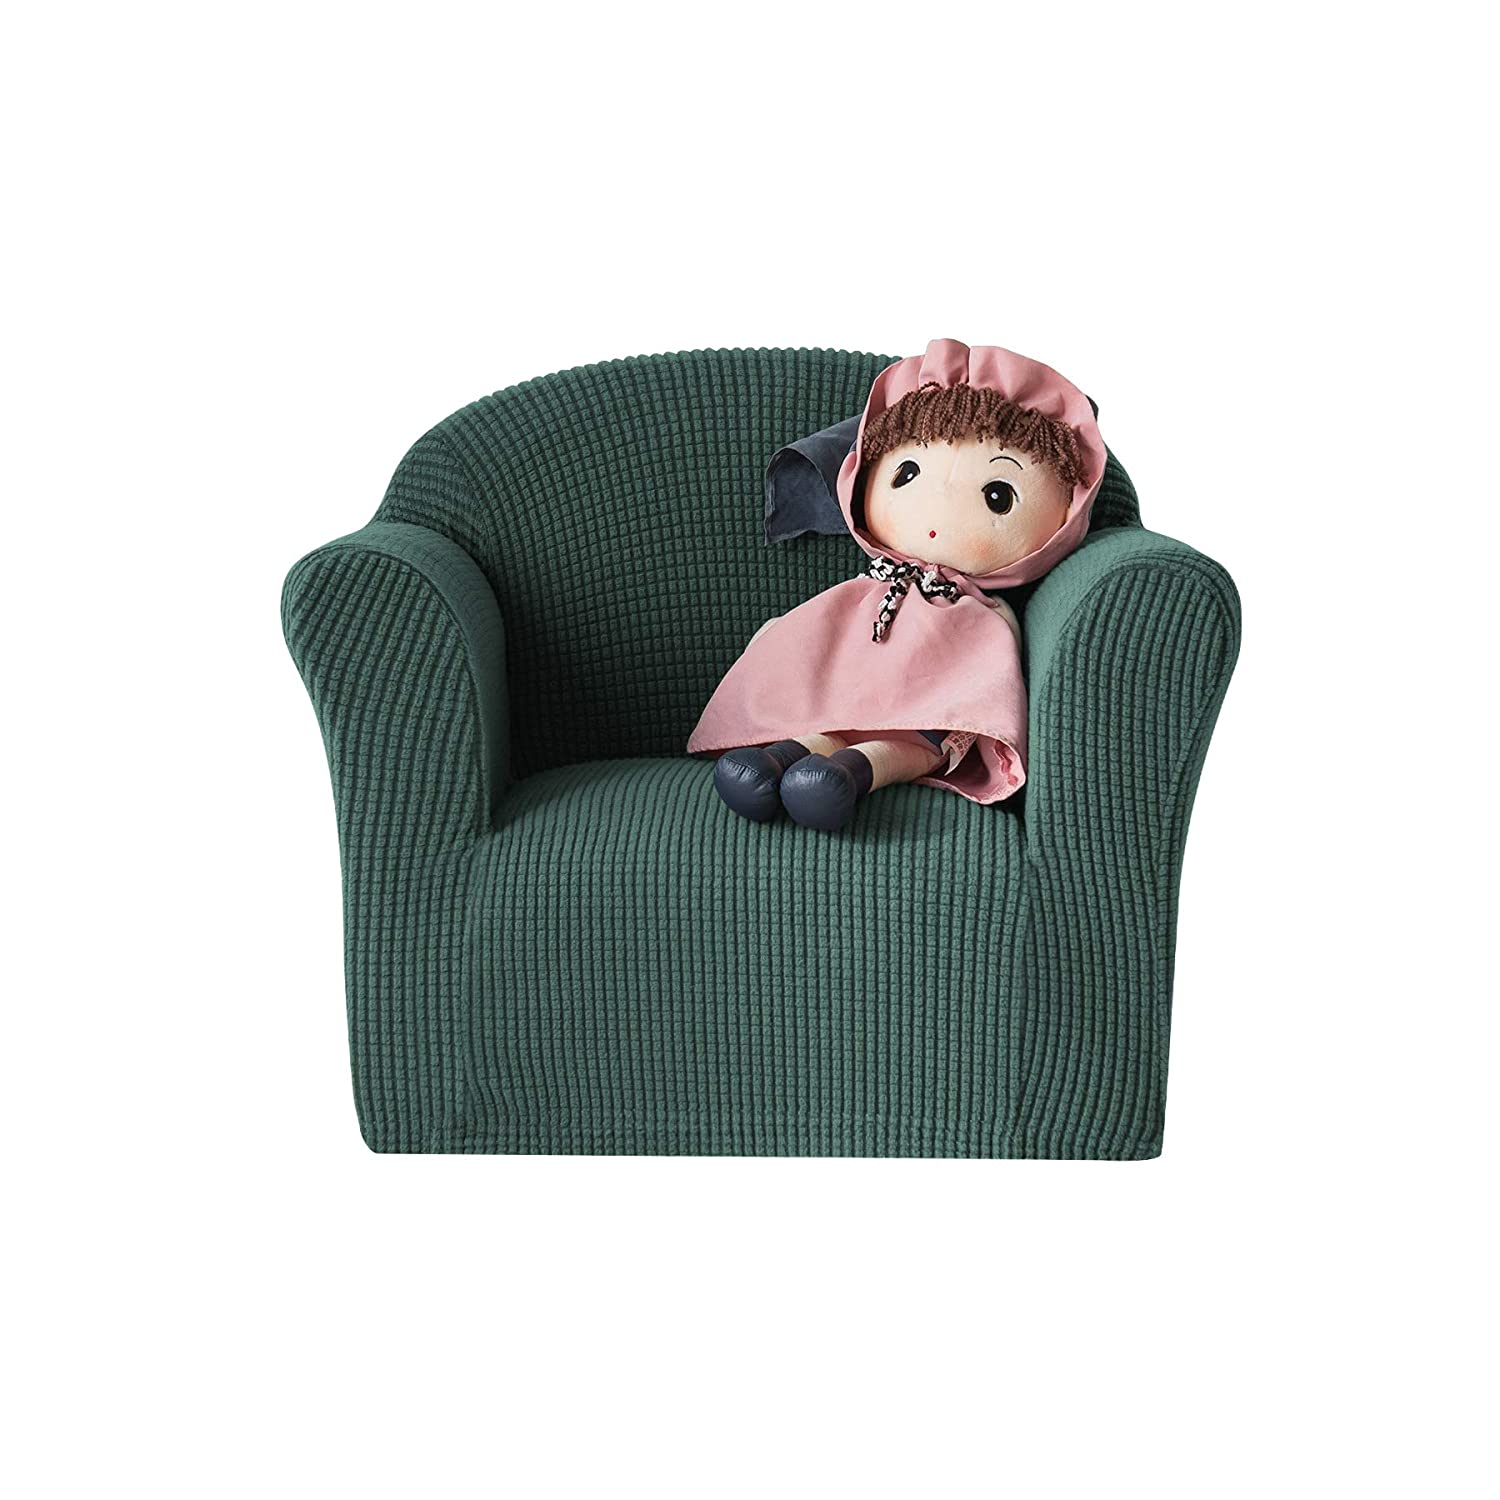 Awe Inspiring Chun Yi Jacquard High Stretch Kids Sofa Cover Childs Chair Cover Mini Size Sofa Slipcovers 1 Seat Soft Armchair Couch Cover Settee Coat For Beatyapartments Chair Design Images Beatyapartmentscom